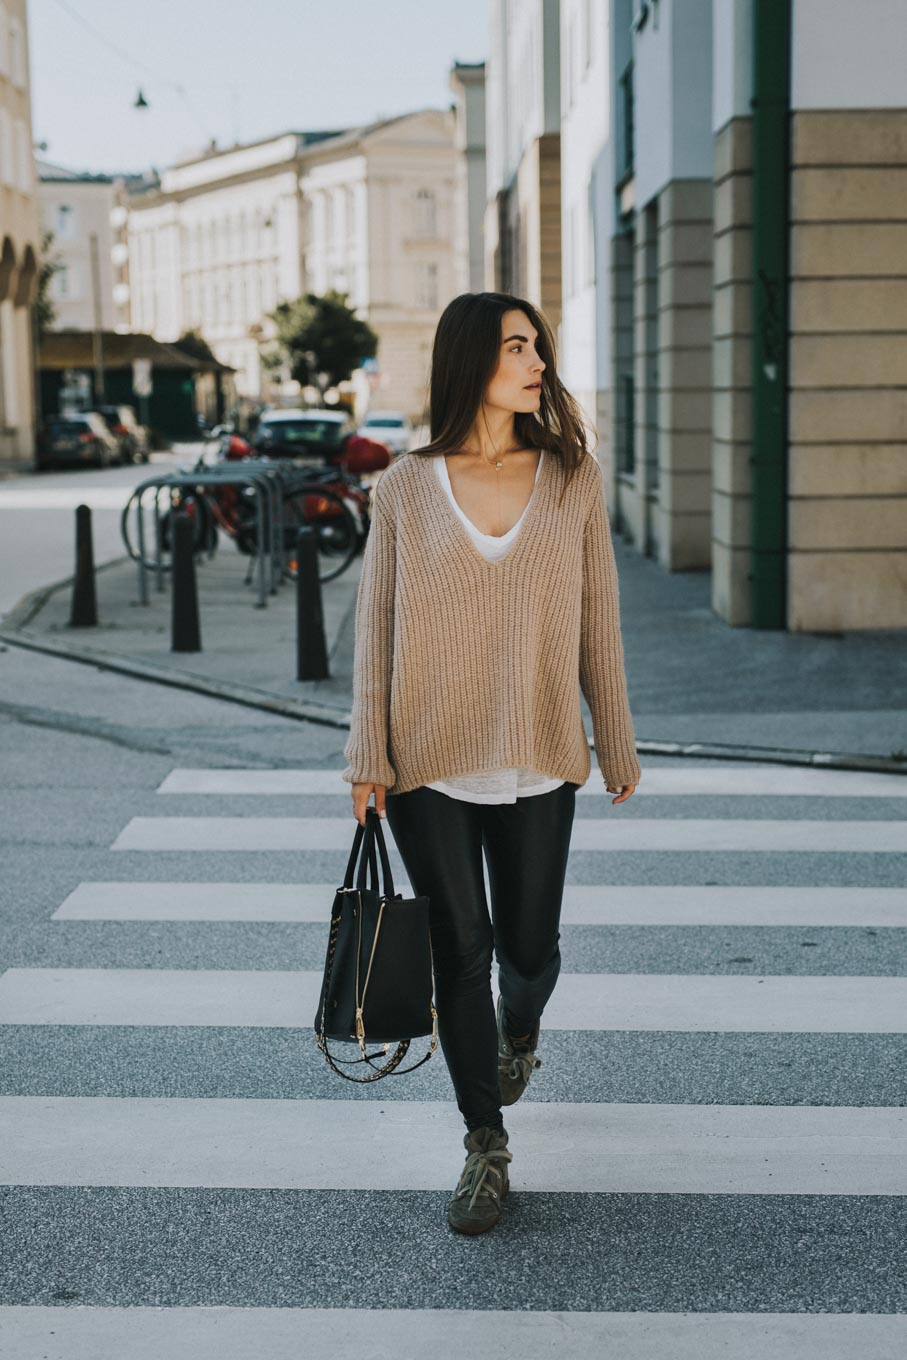 Style on a Budget | You Rock My Life